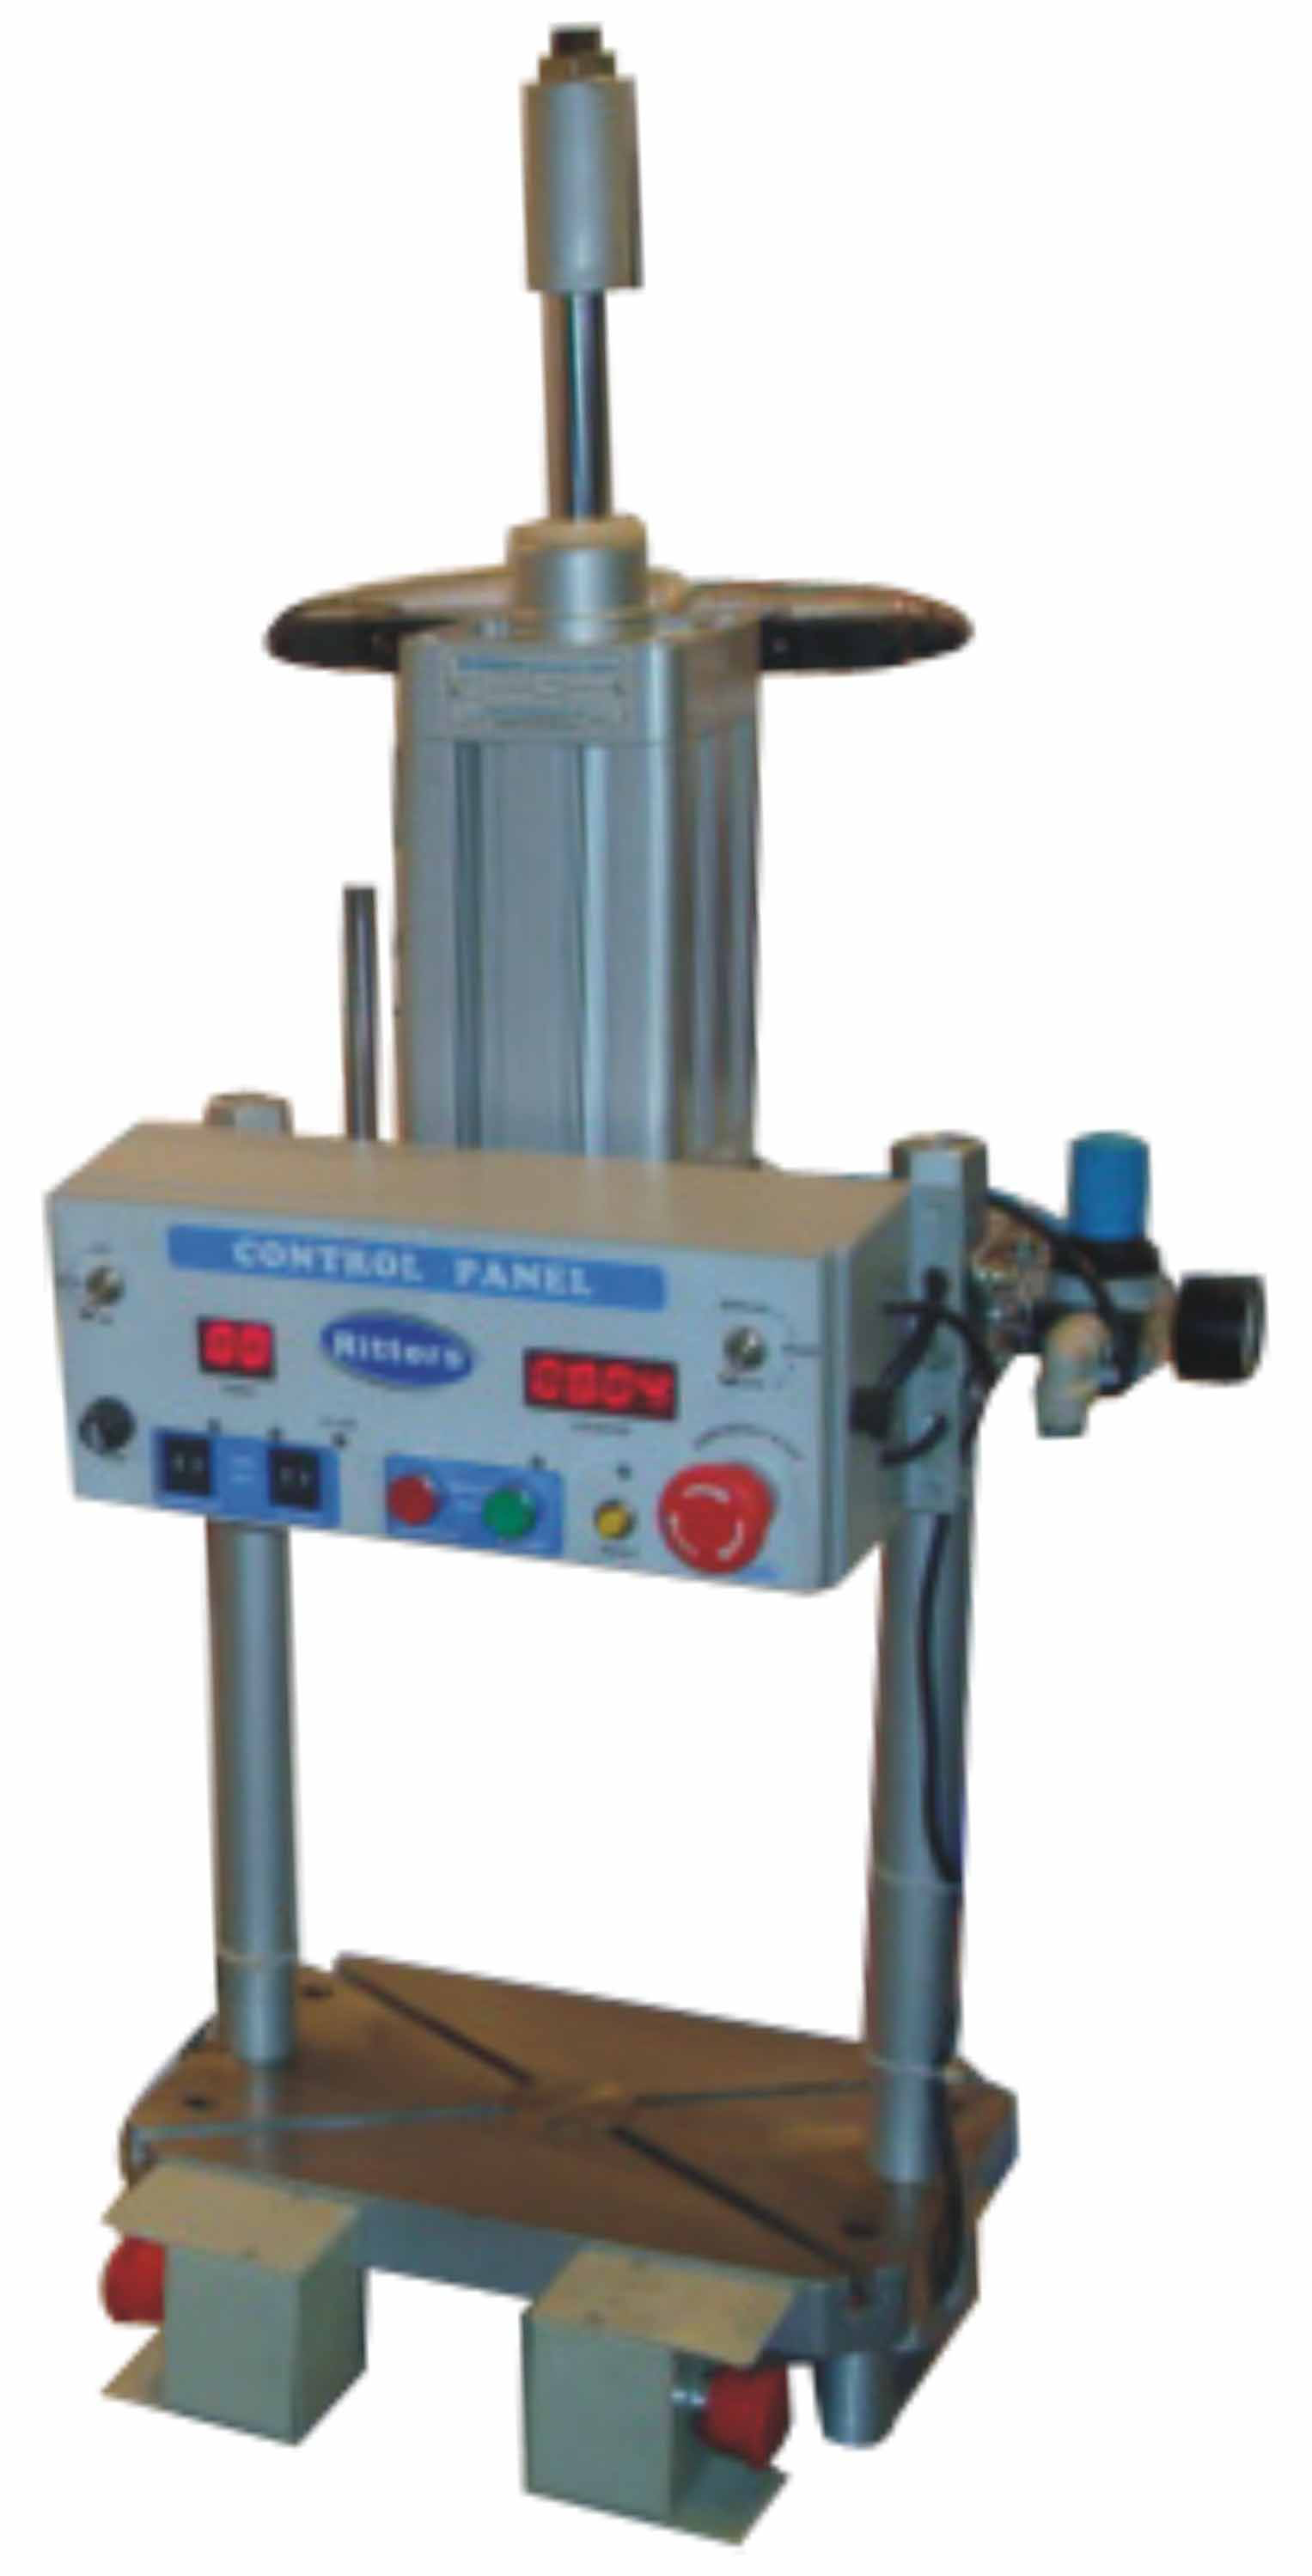 ritters Pneumatic Press 2 - Pillar